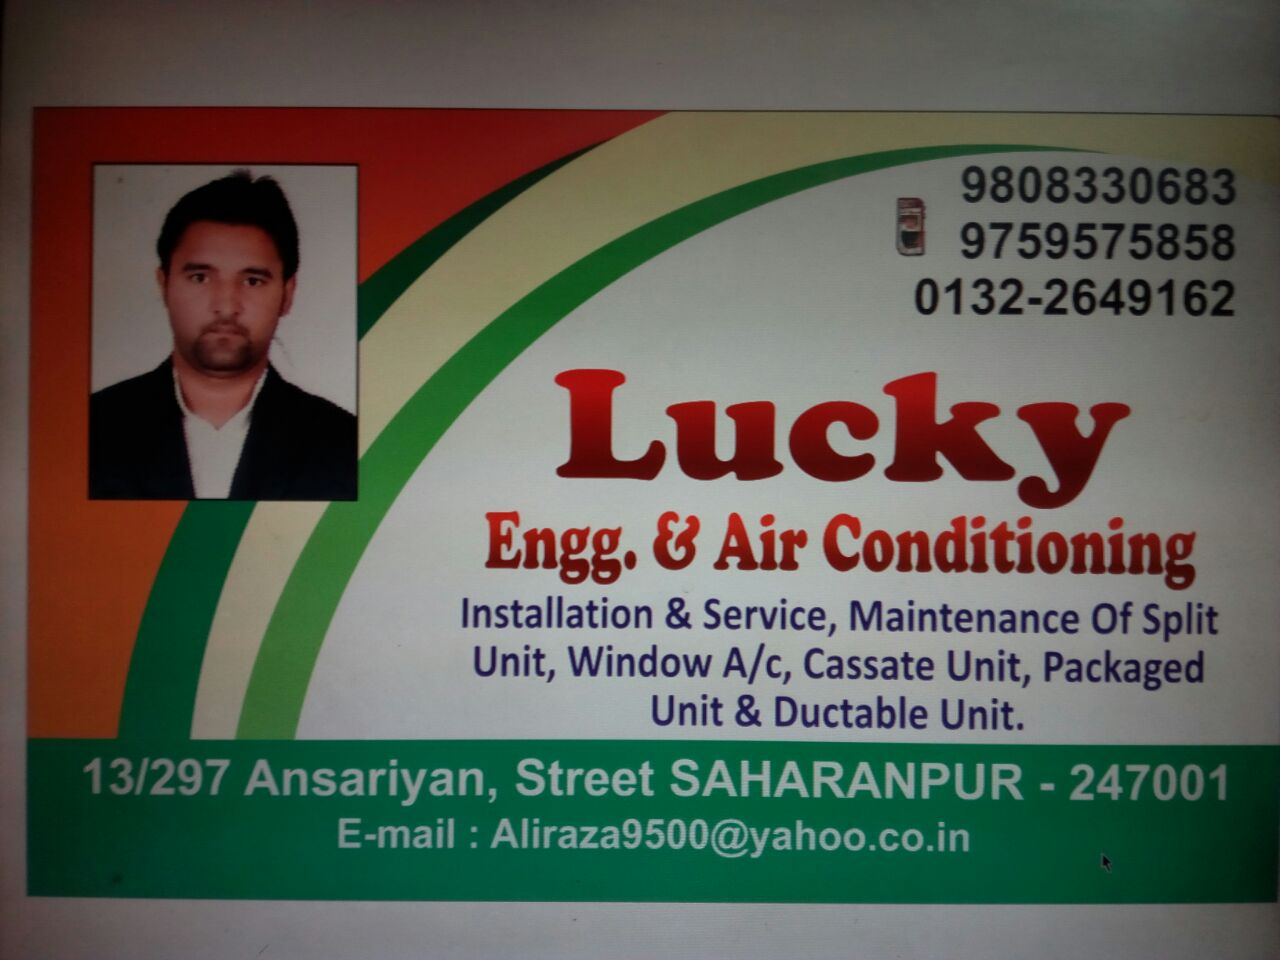 LUCKY ENGG AIR CONDITIONING